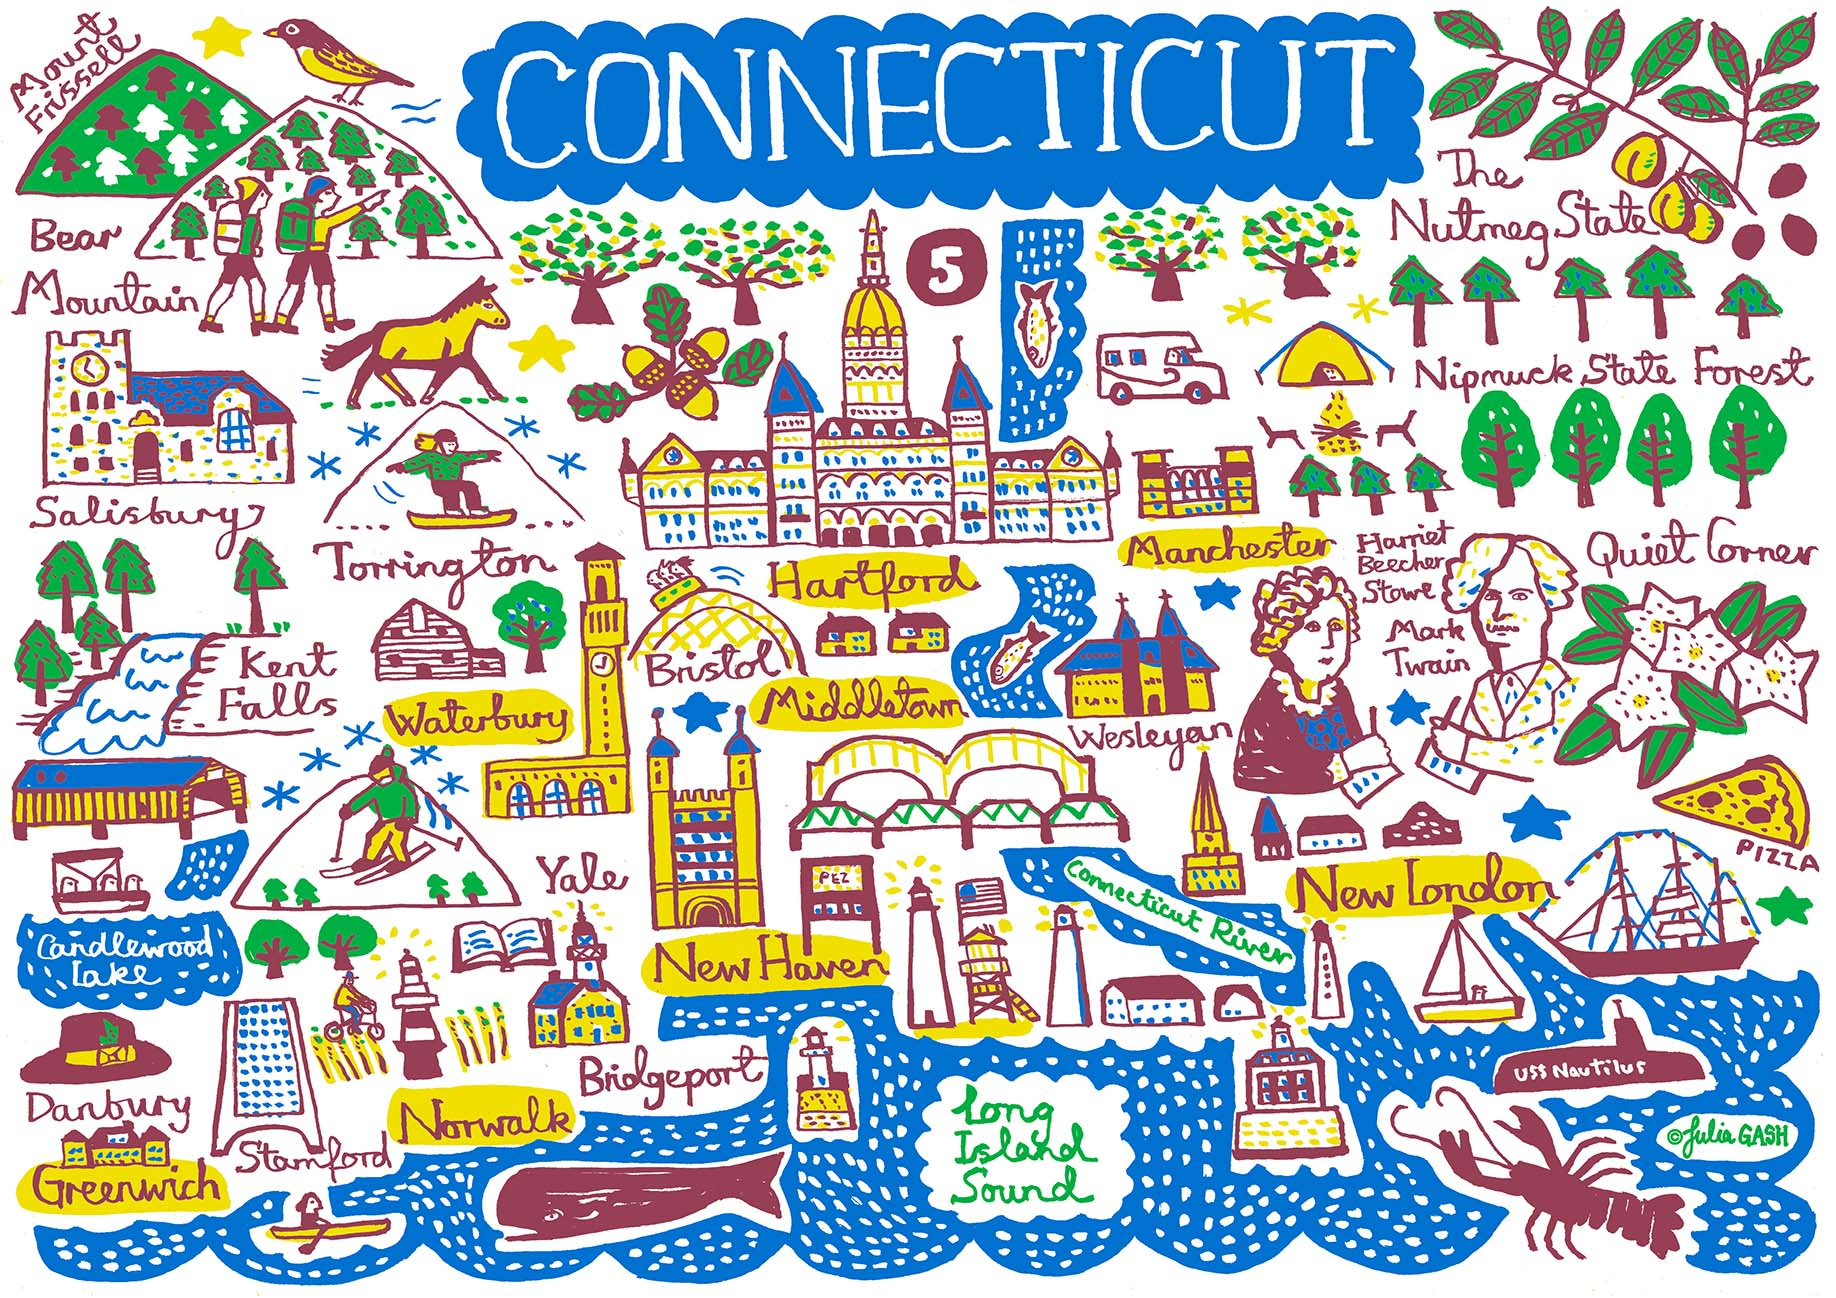 Connecticut Art Print - Julia Gash